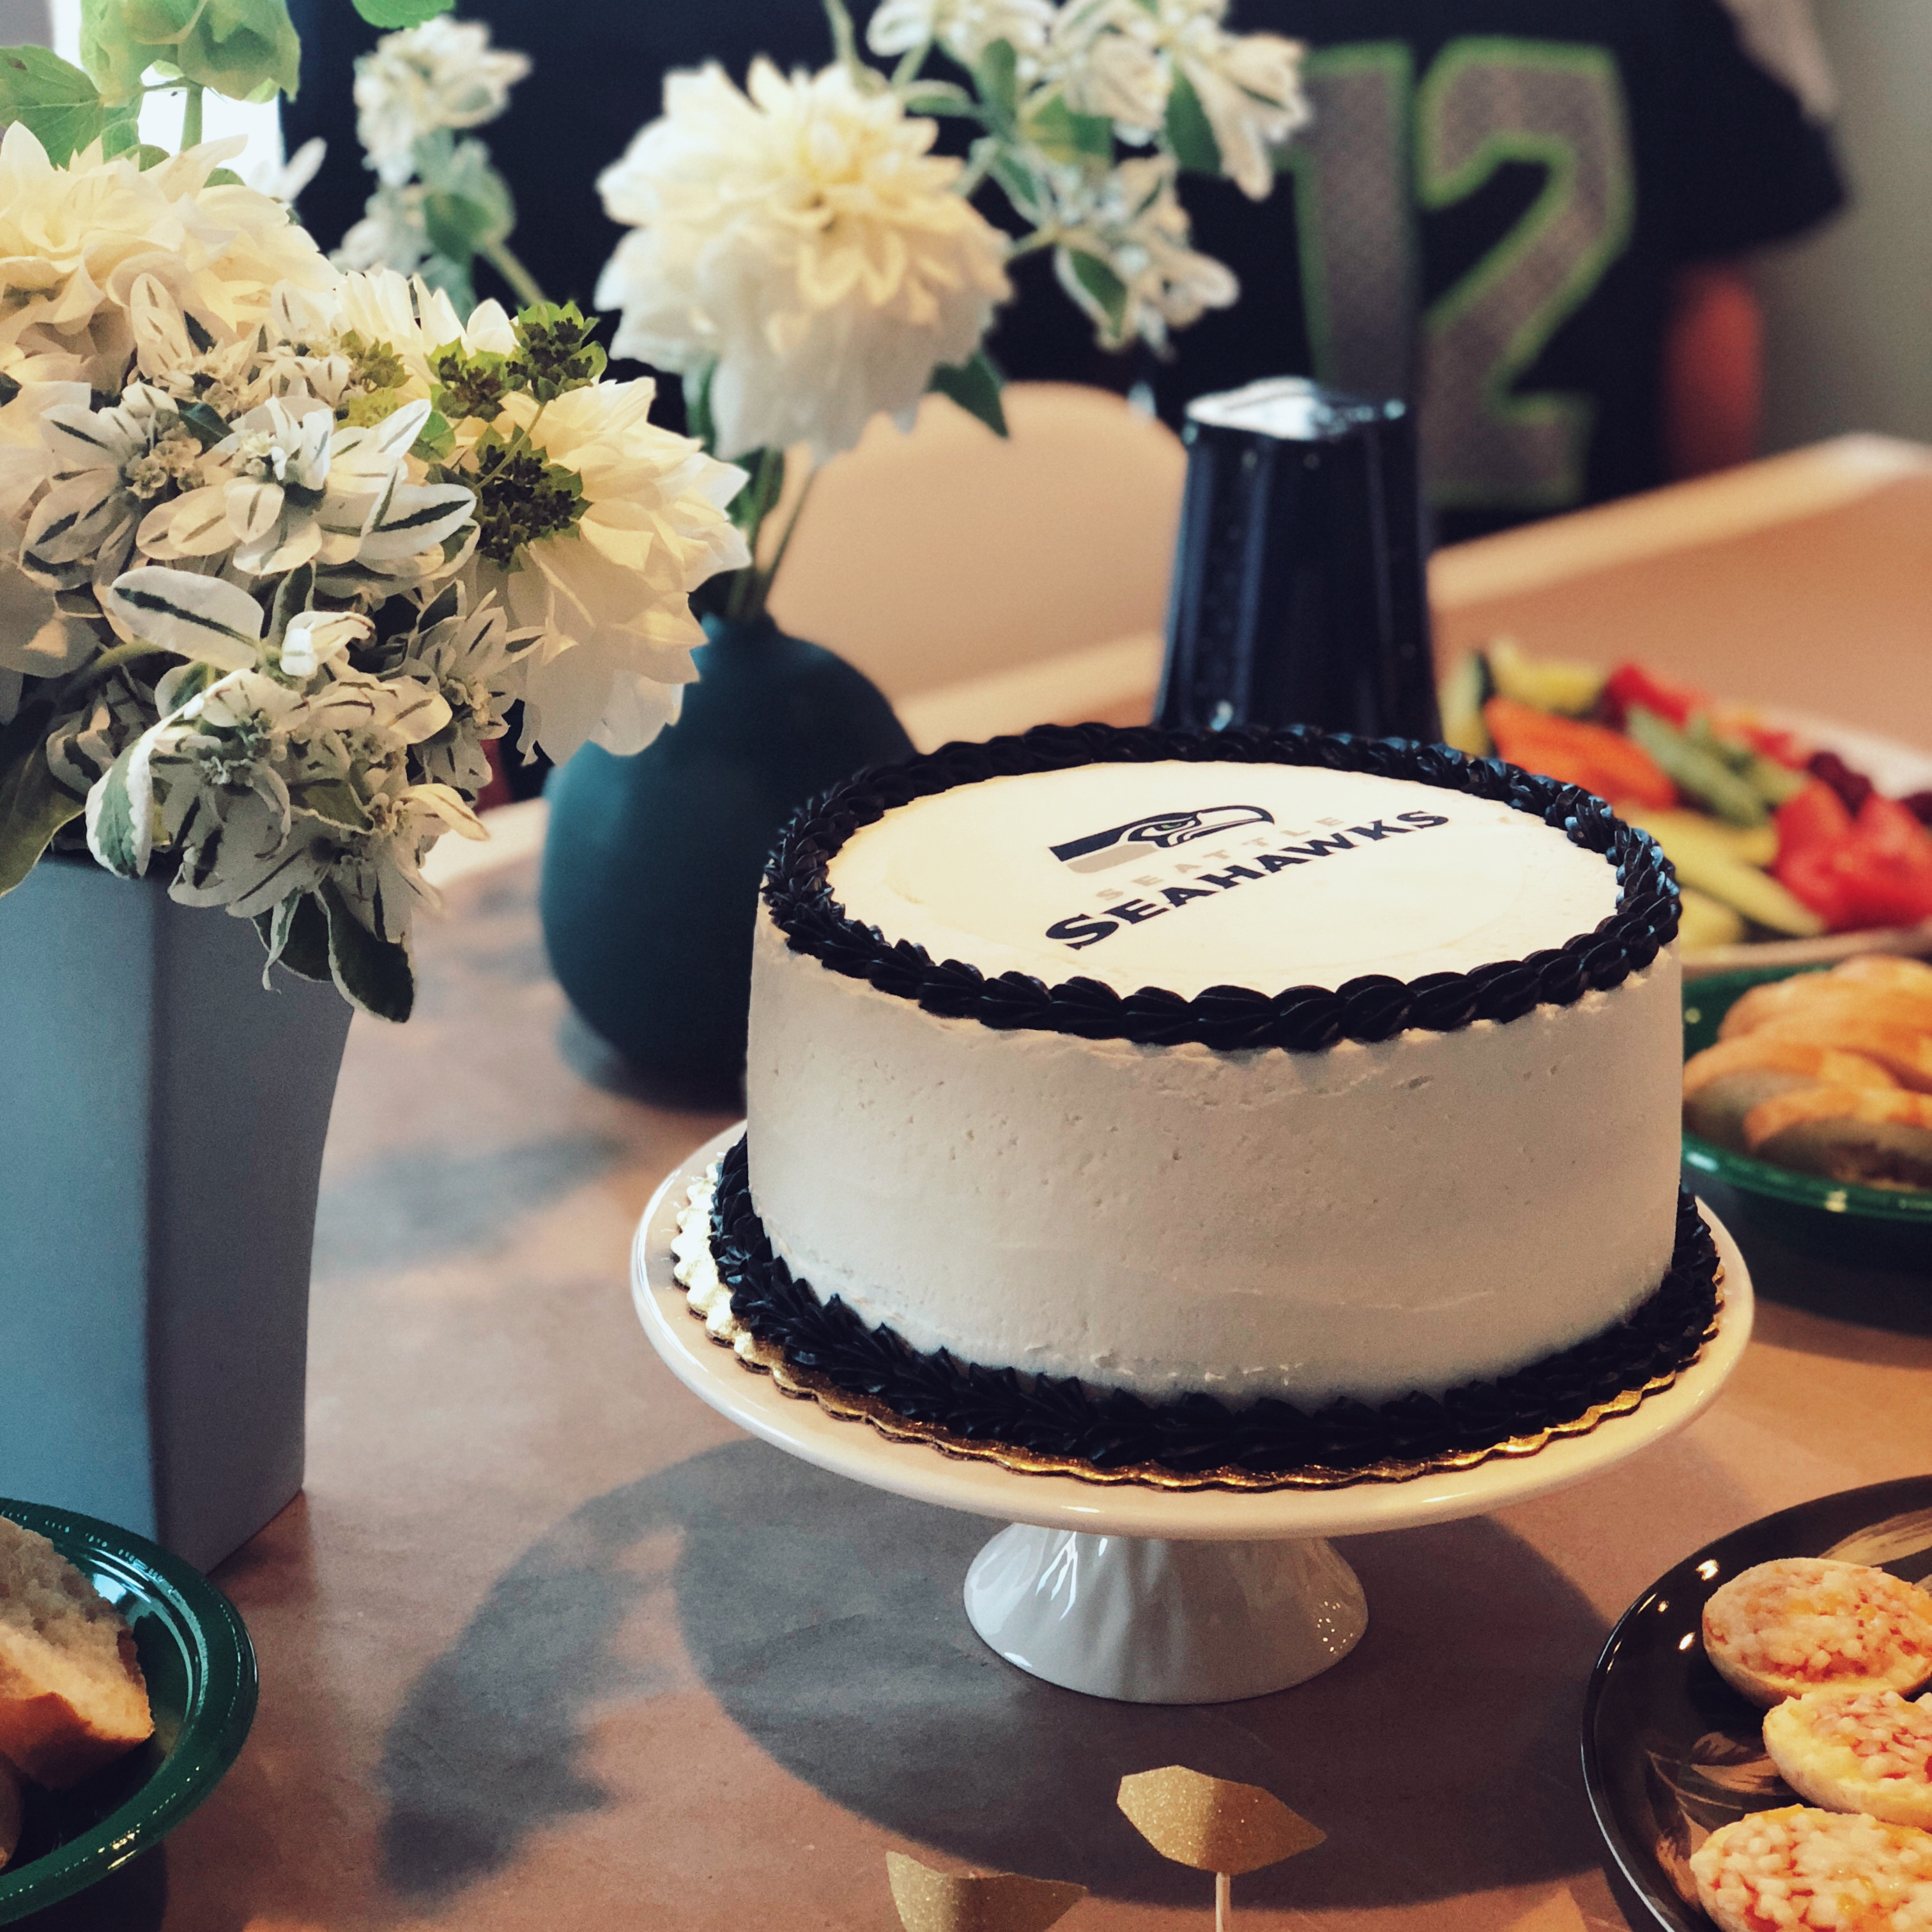 An officially licensed NFL cake from a local bakery for a party in Seattle